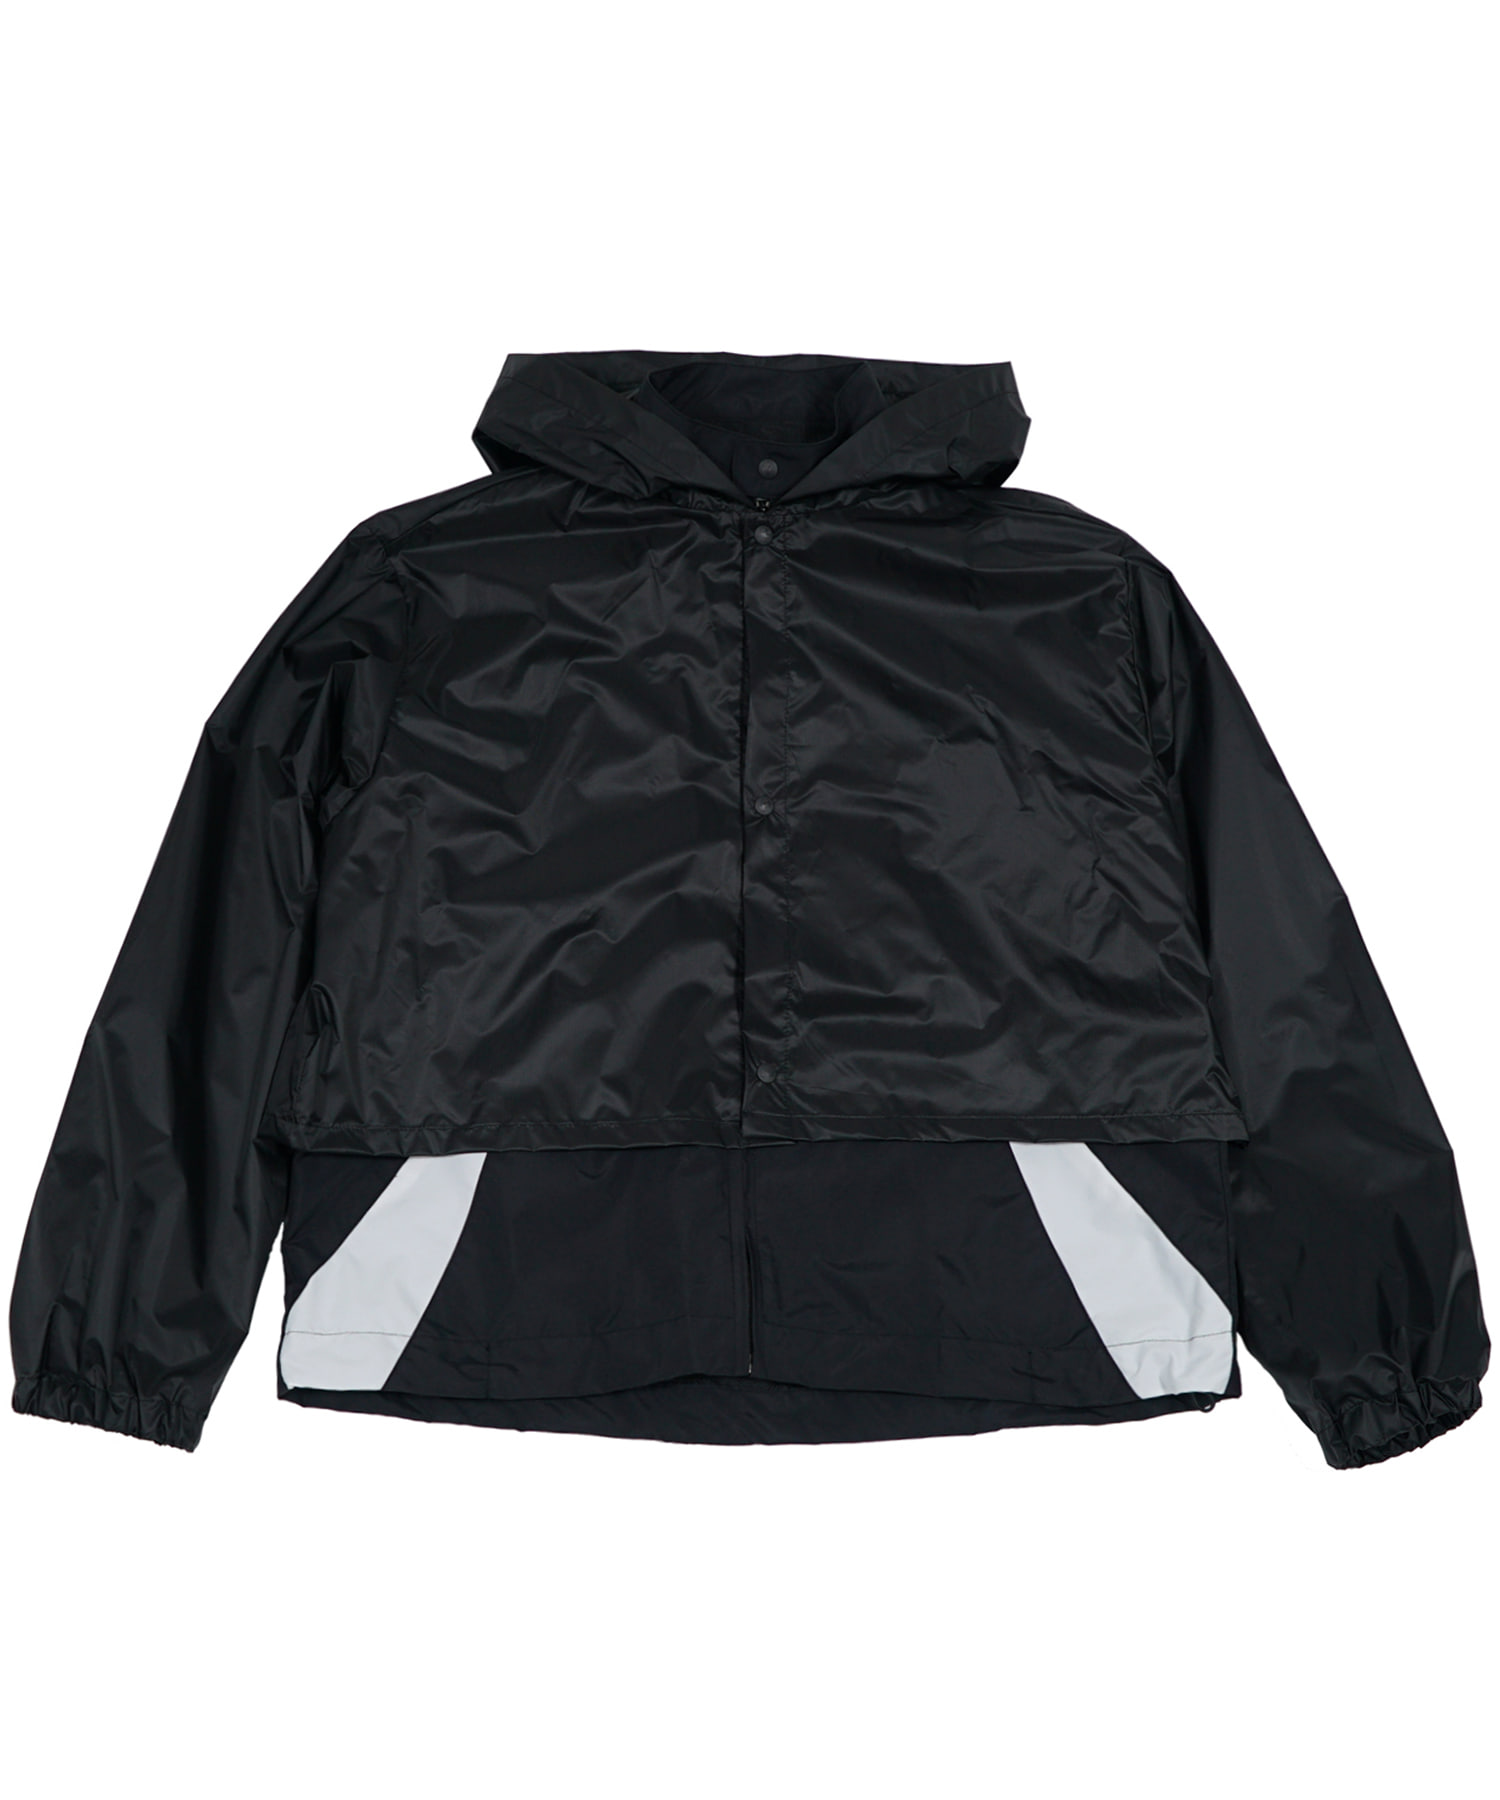 TRACK JACKET w/ RAIN COVER BLACK